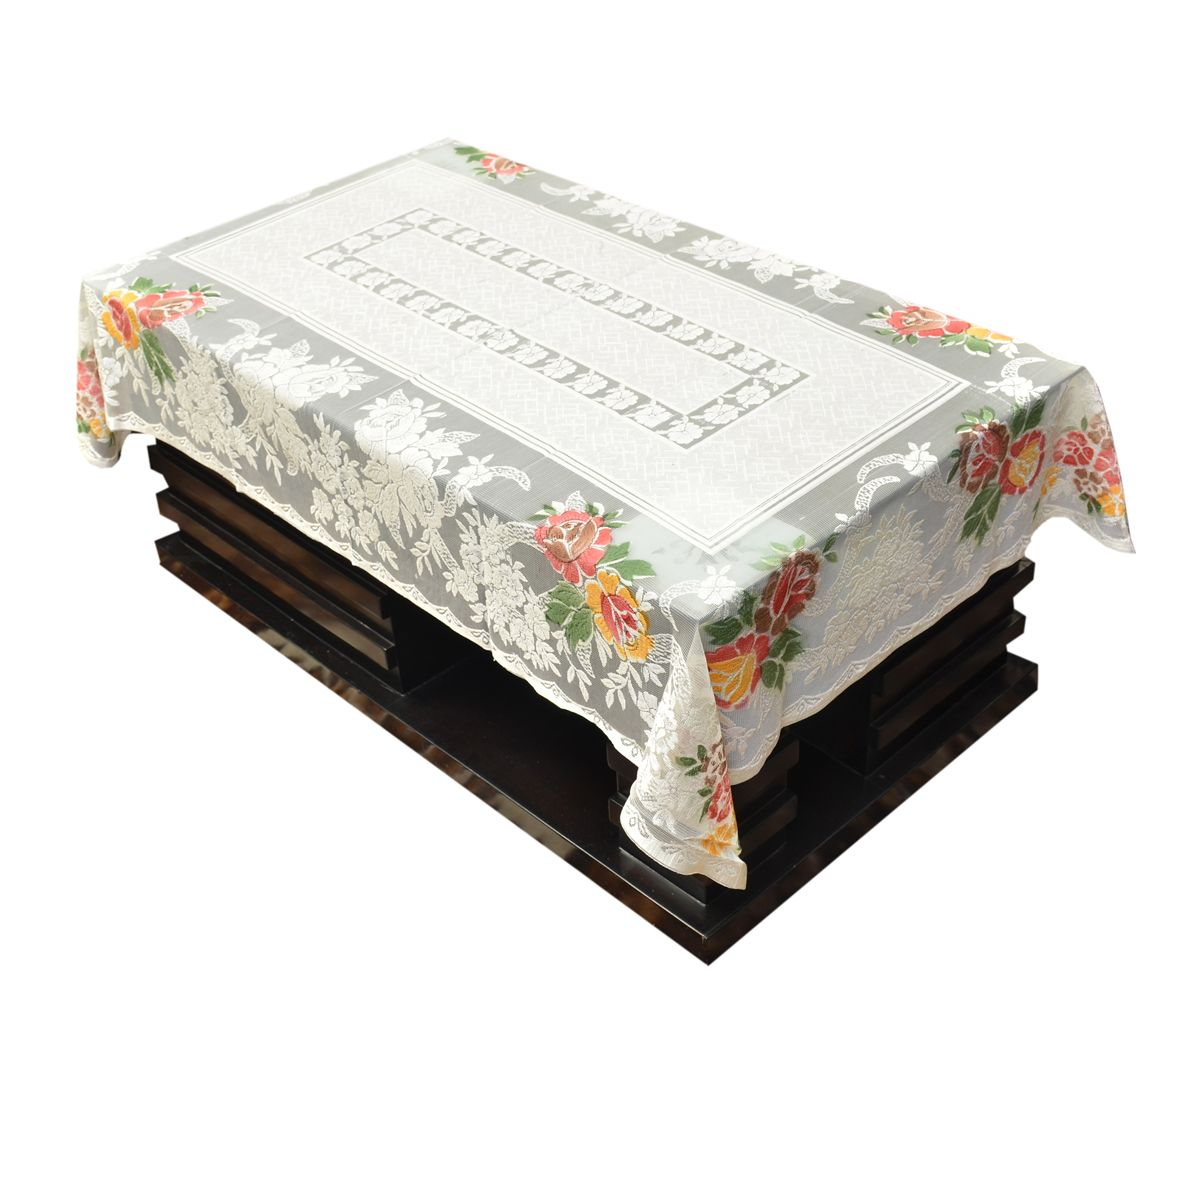 Kuber Industries™ Cream Shining Printed Cloth Net Center Table Cover 4 Seater 40*60 Inches (Code-CT0050)